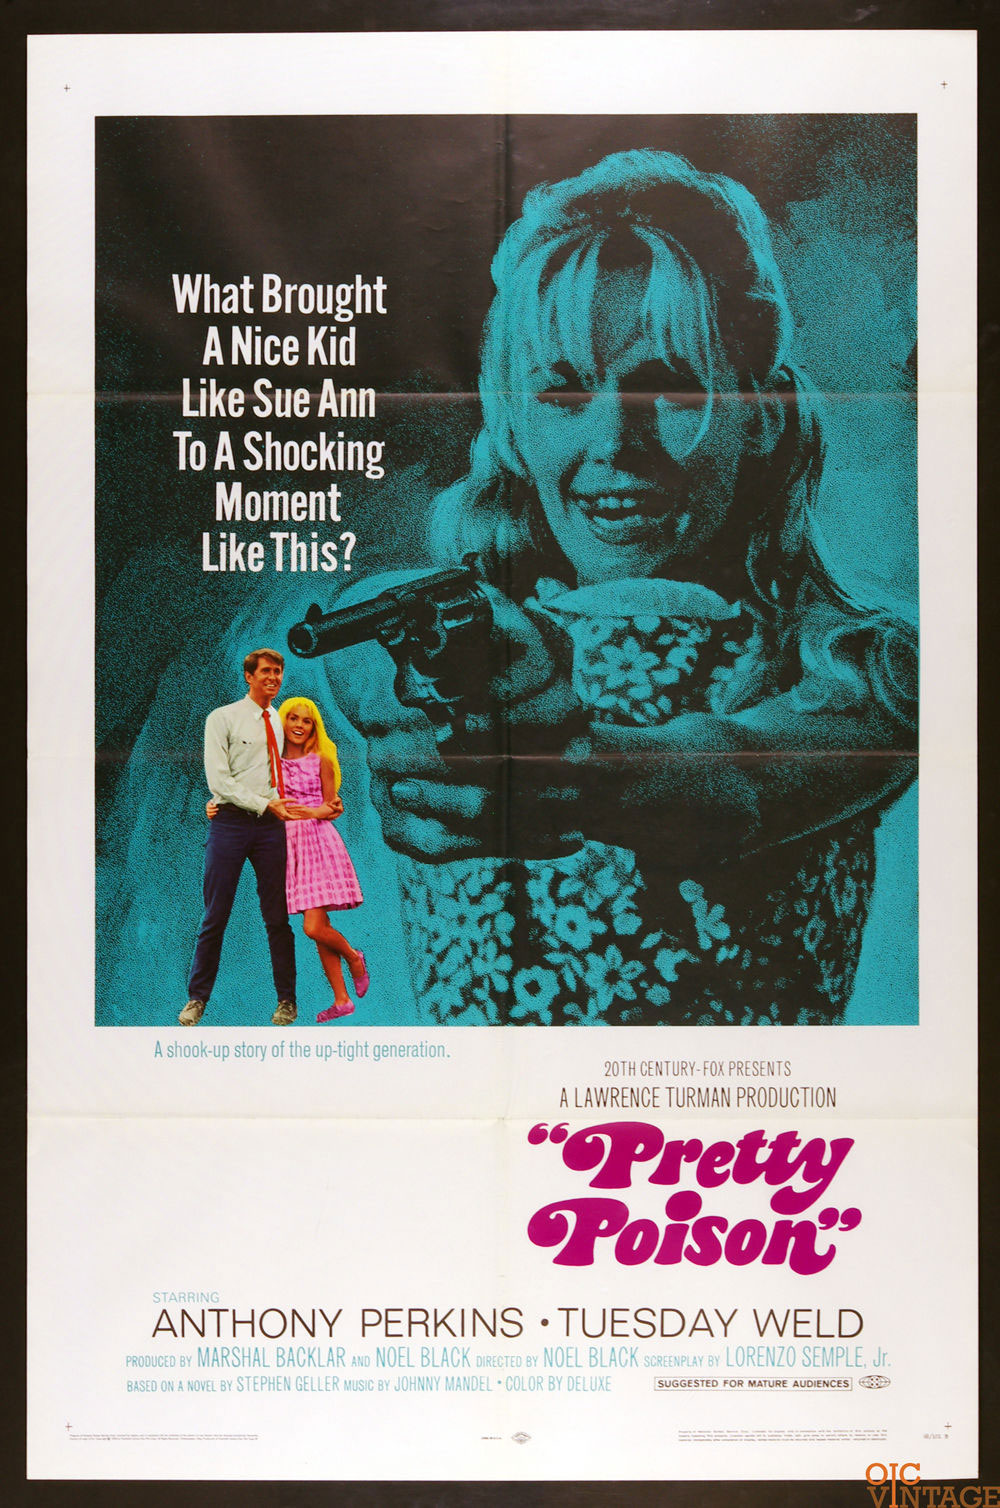 Pretty Poison Movie Poster 1968 Anthony Perkins Tuesday Weld 27 x 41 1 sheet